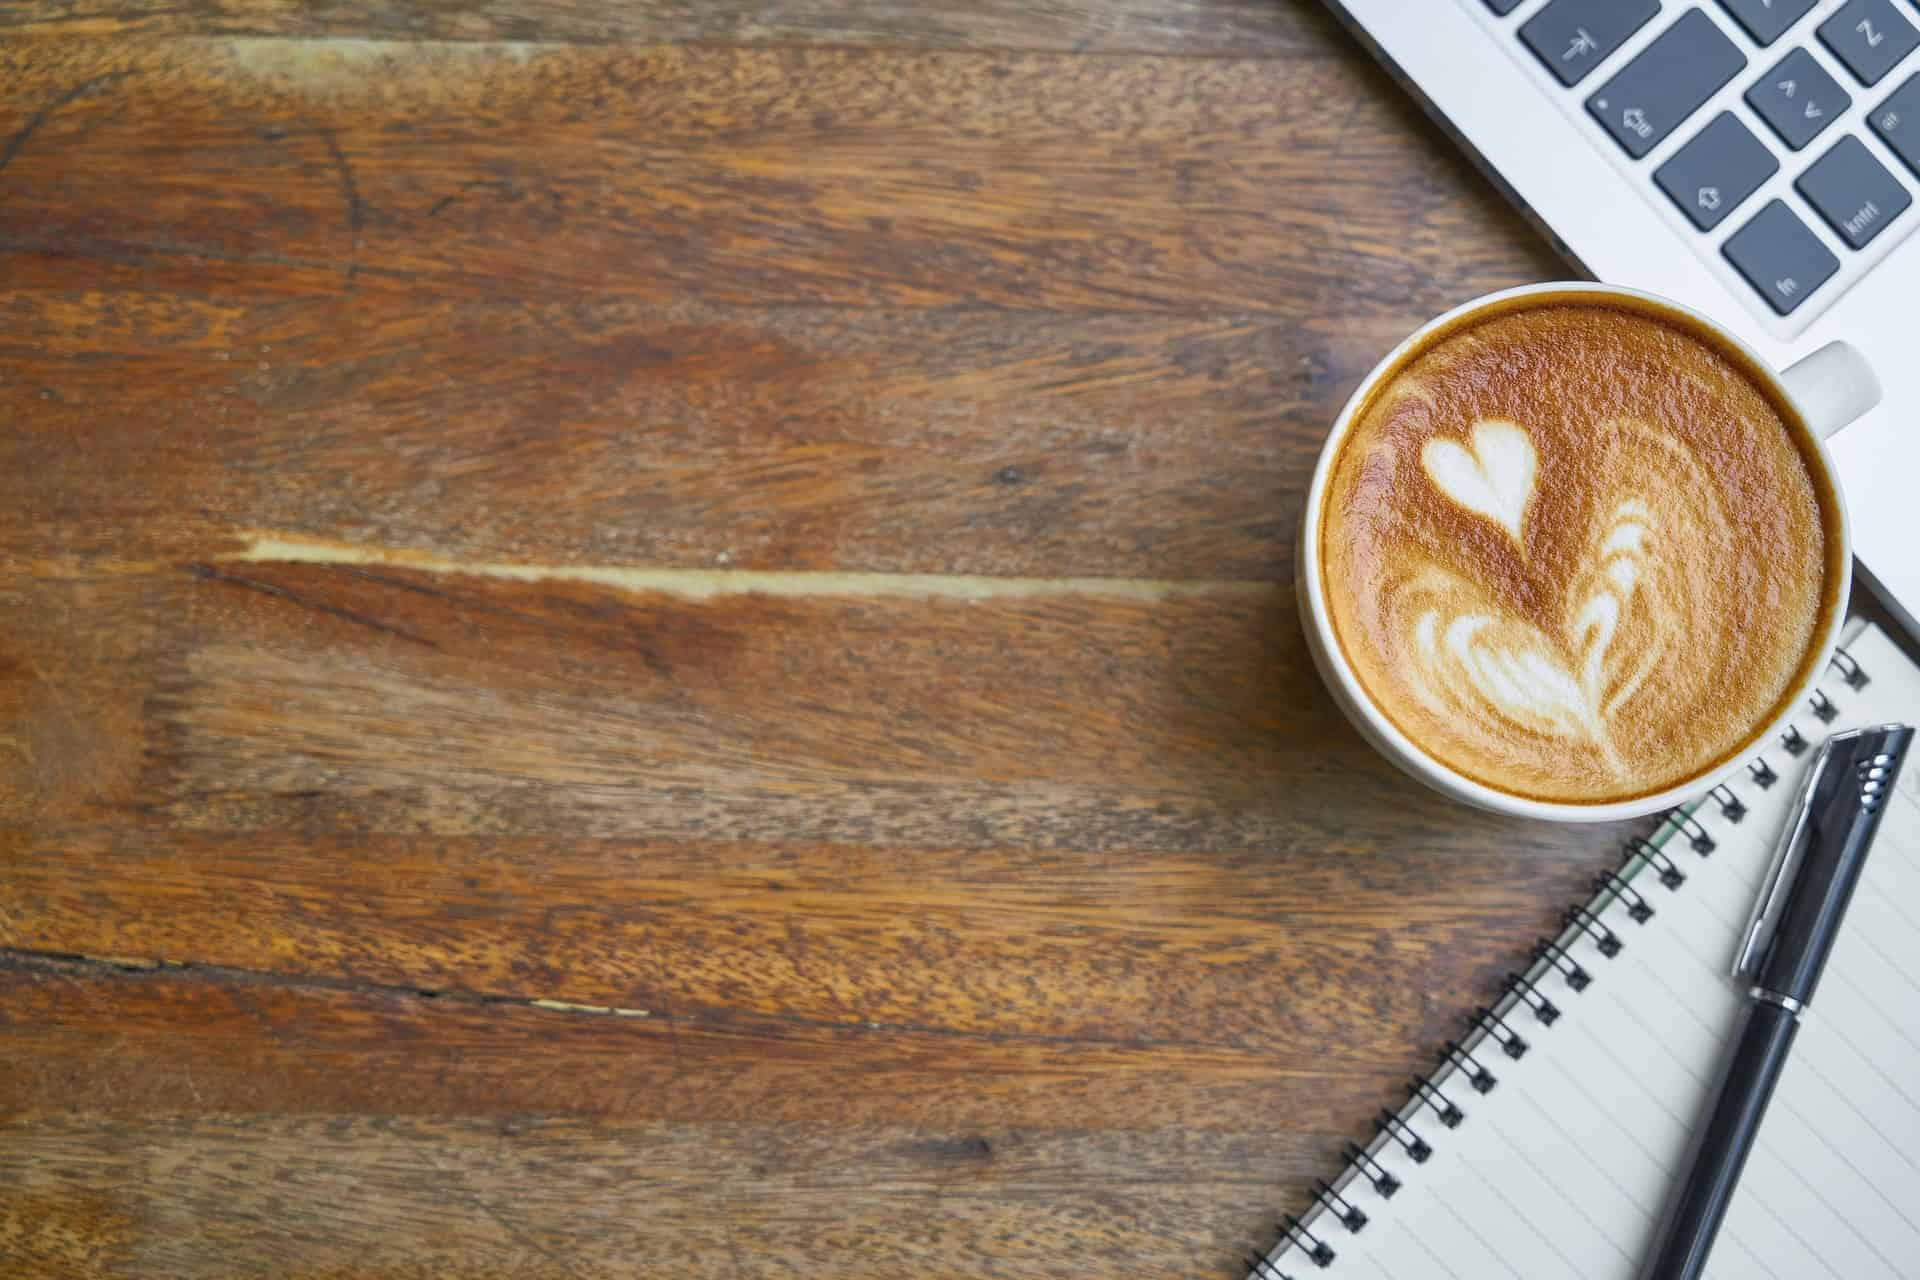 5 Things You Can Add to Your Coffee To Make it Taste Good